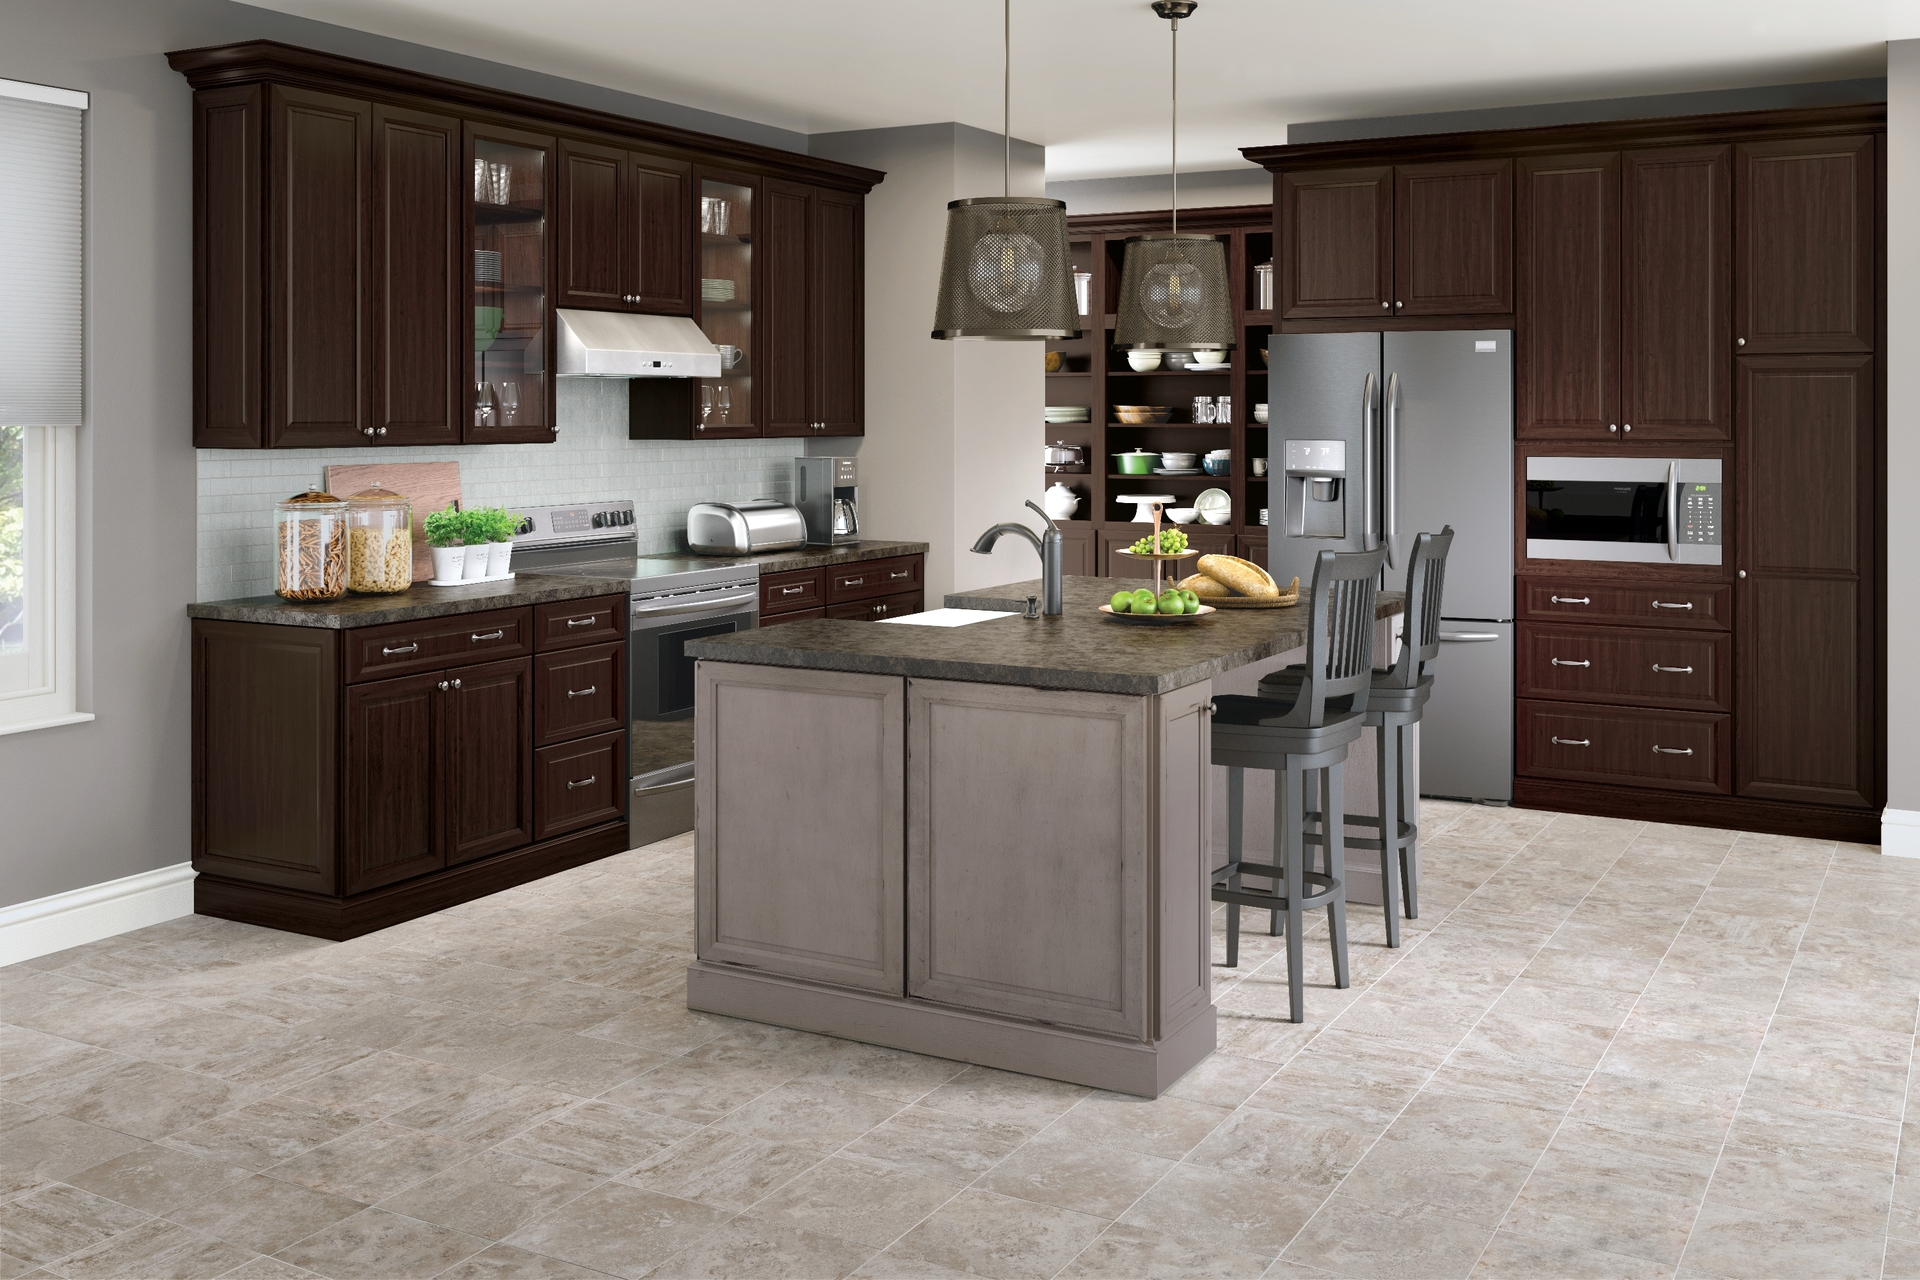 Menards Cabinets Cardell | Review Home Decor